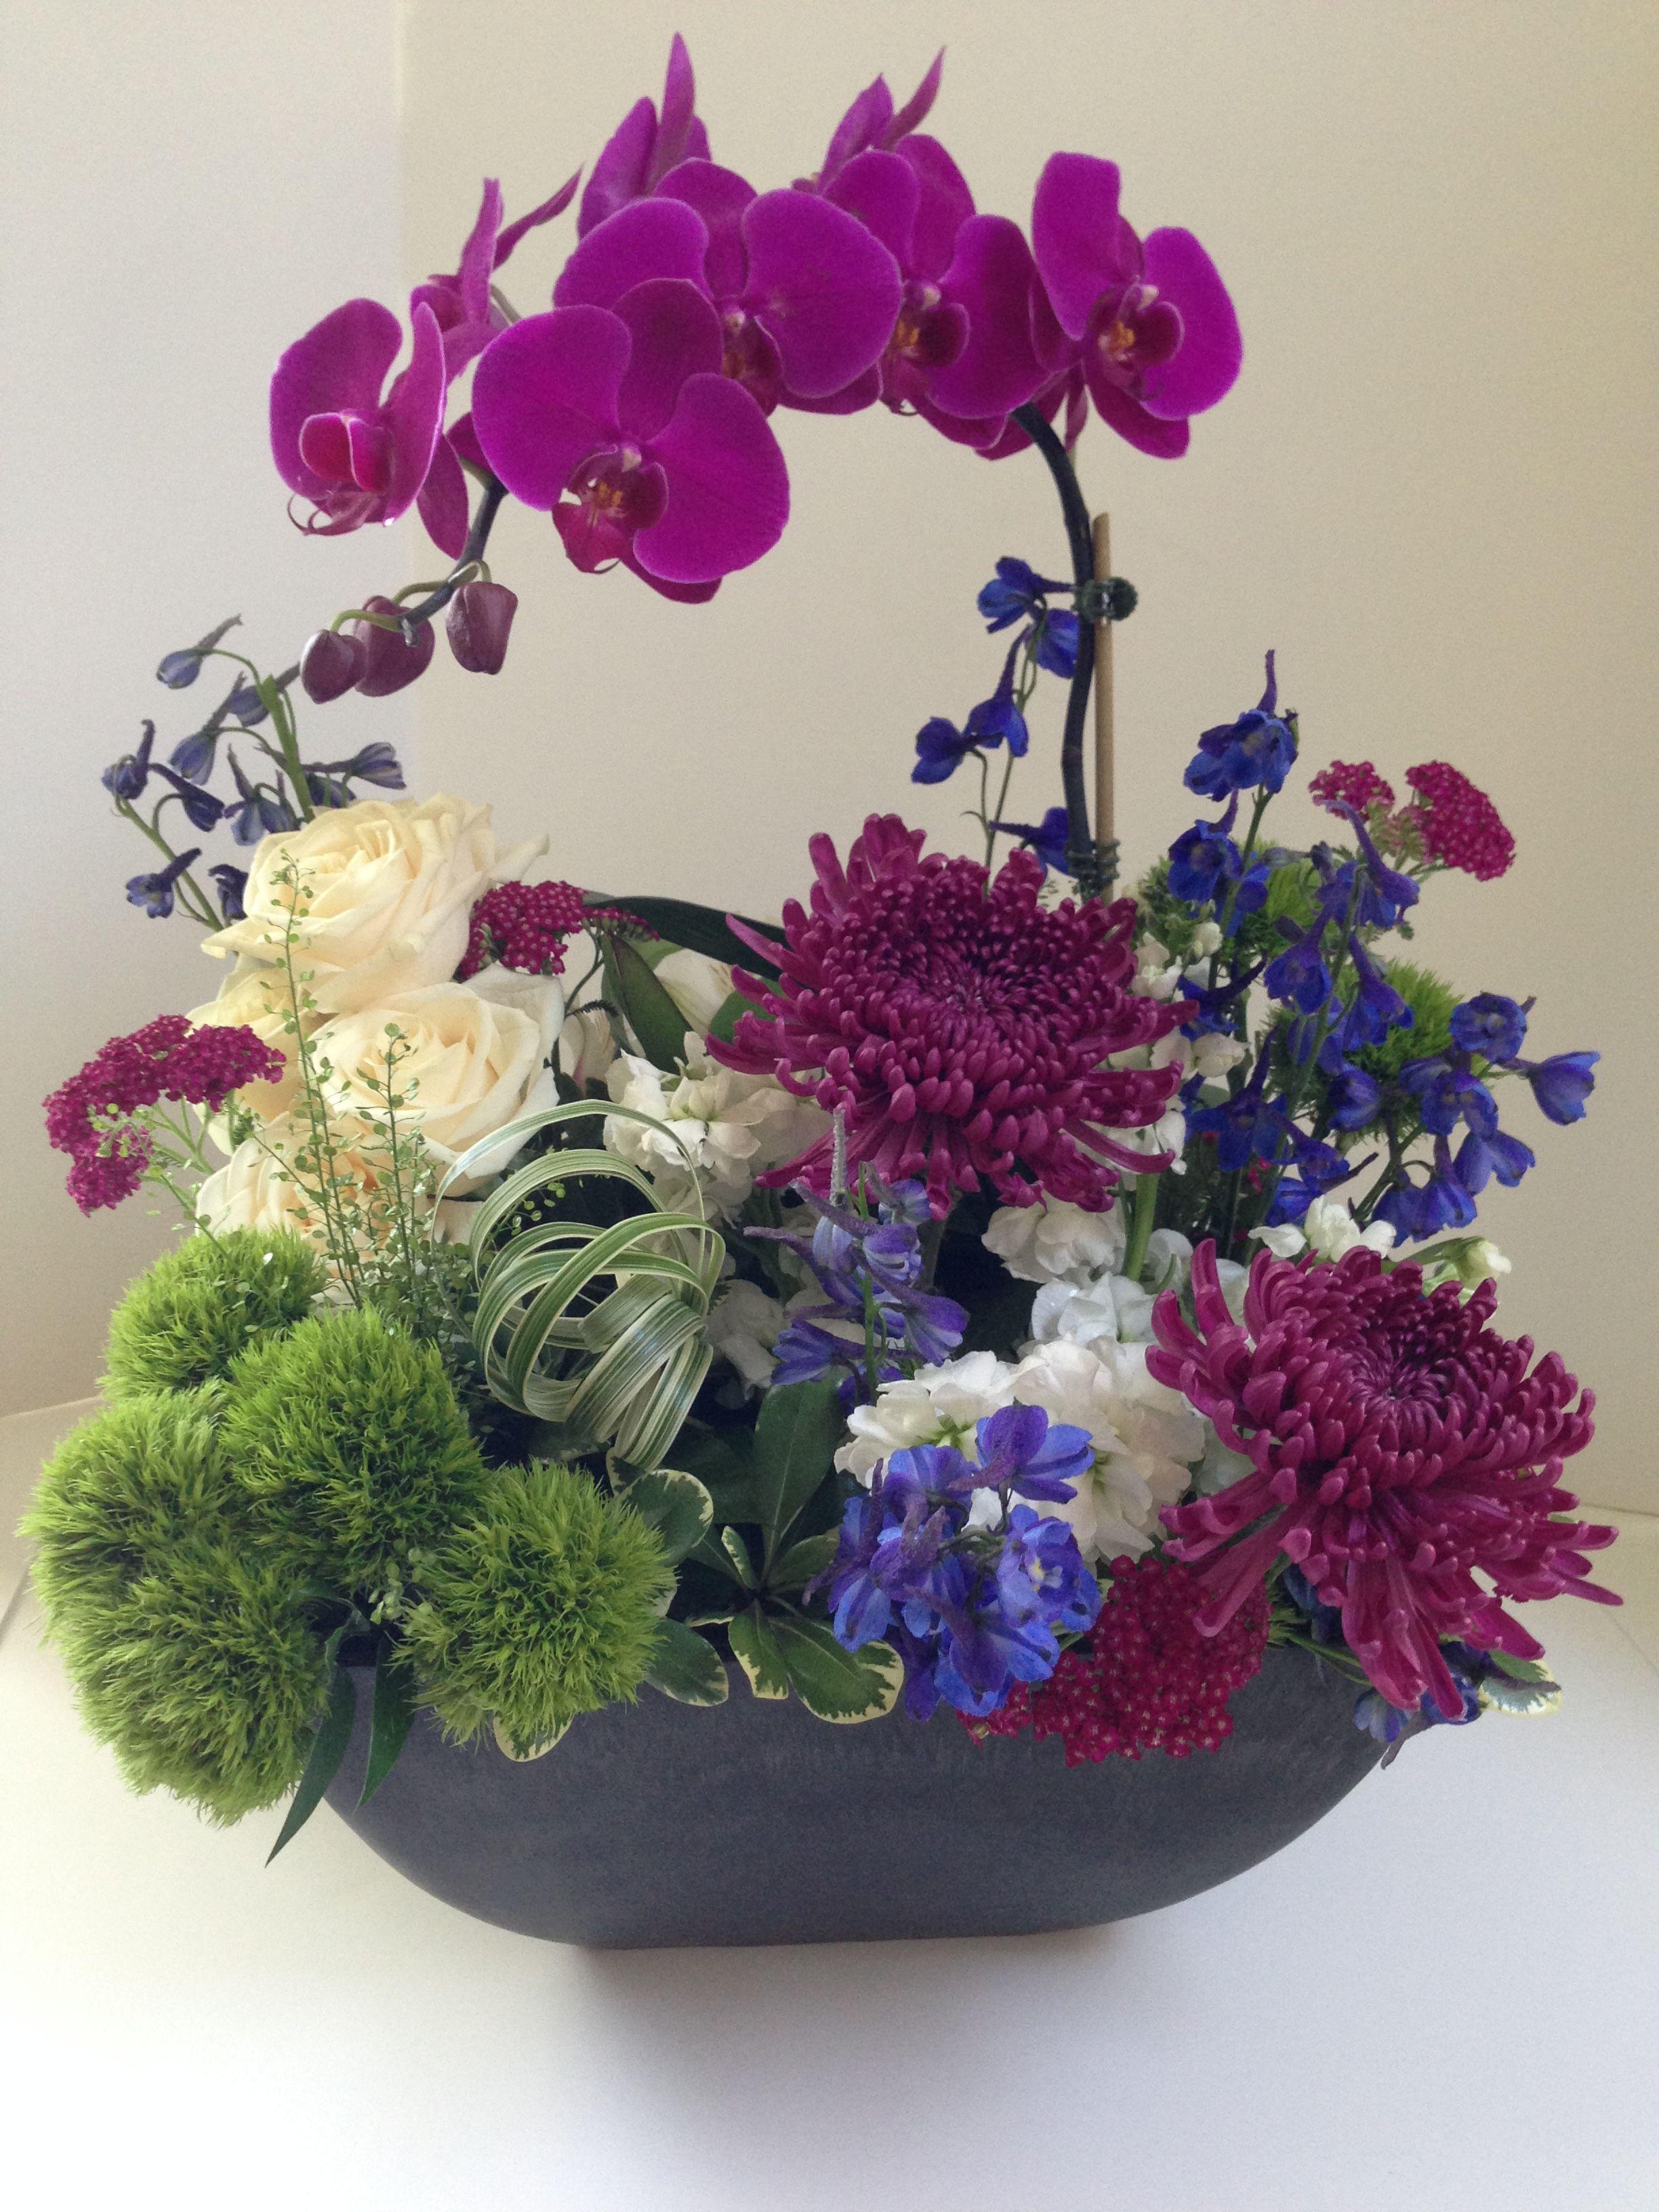 Pin by shertn on flowers pinterest flower arrangements flowers